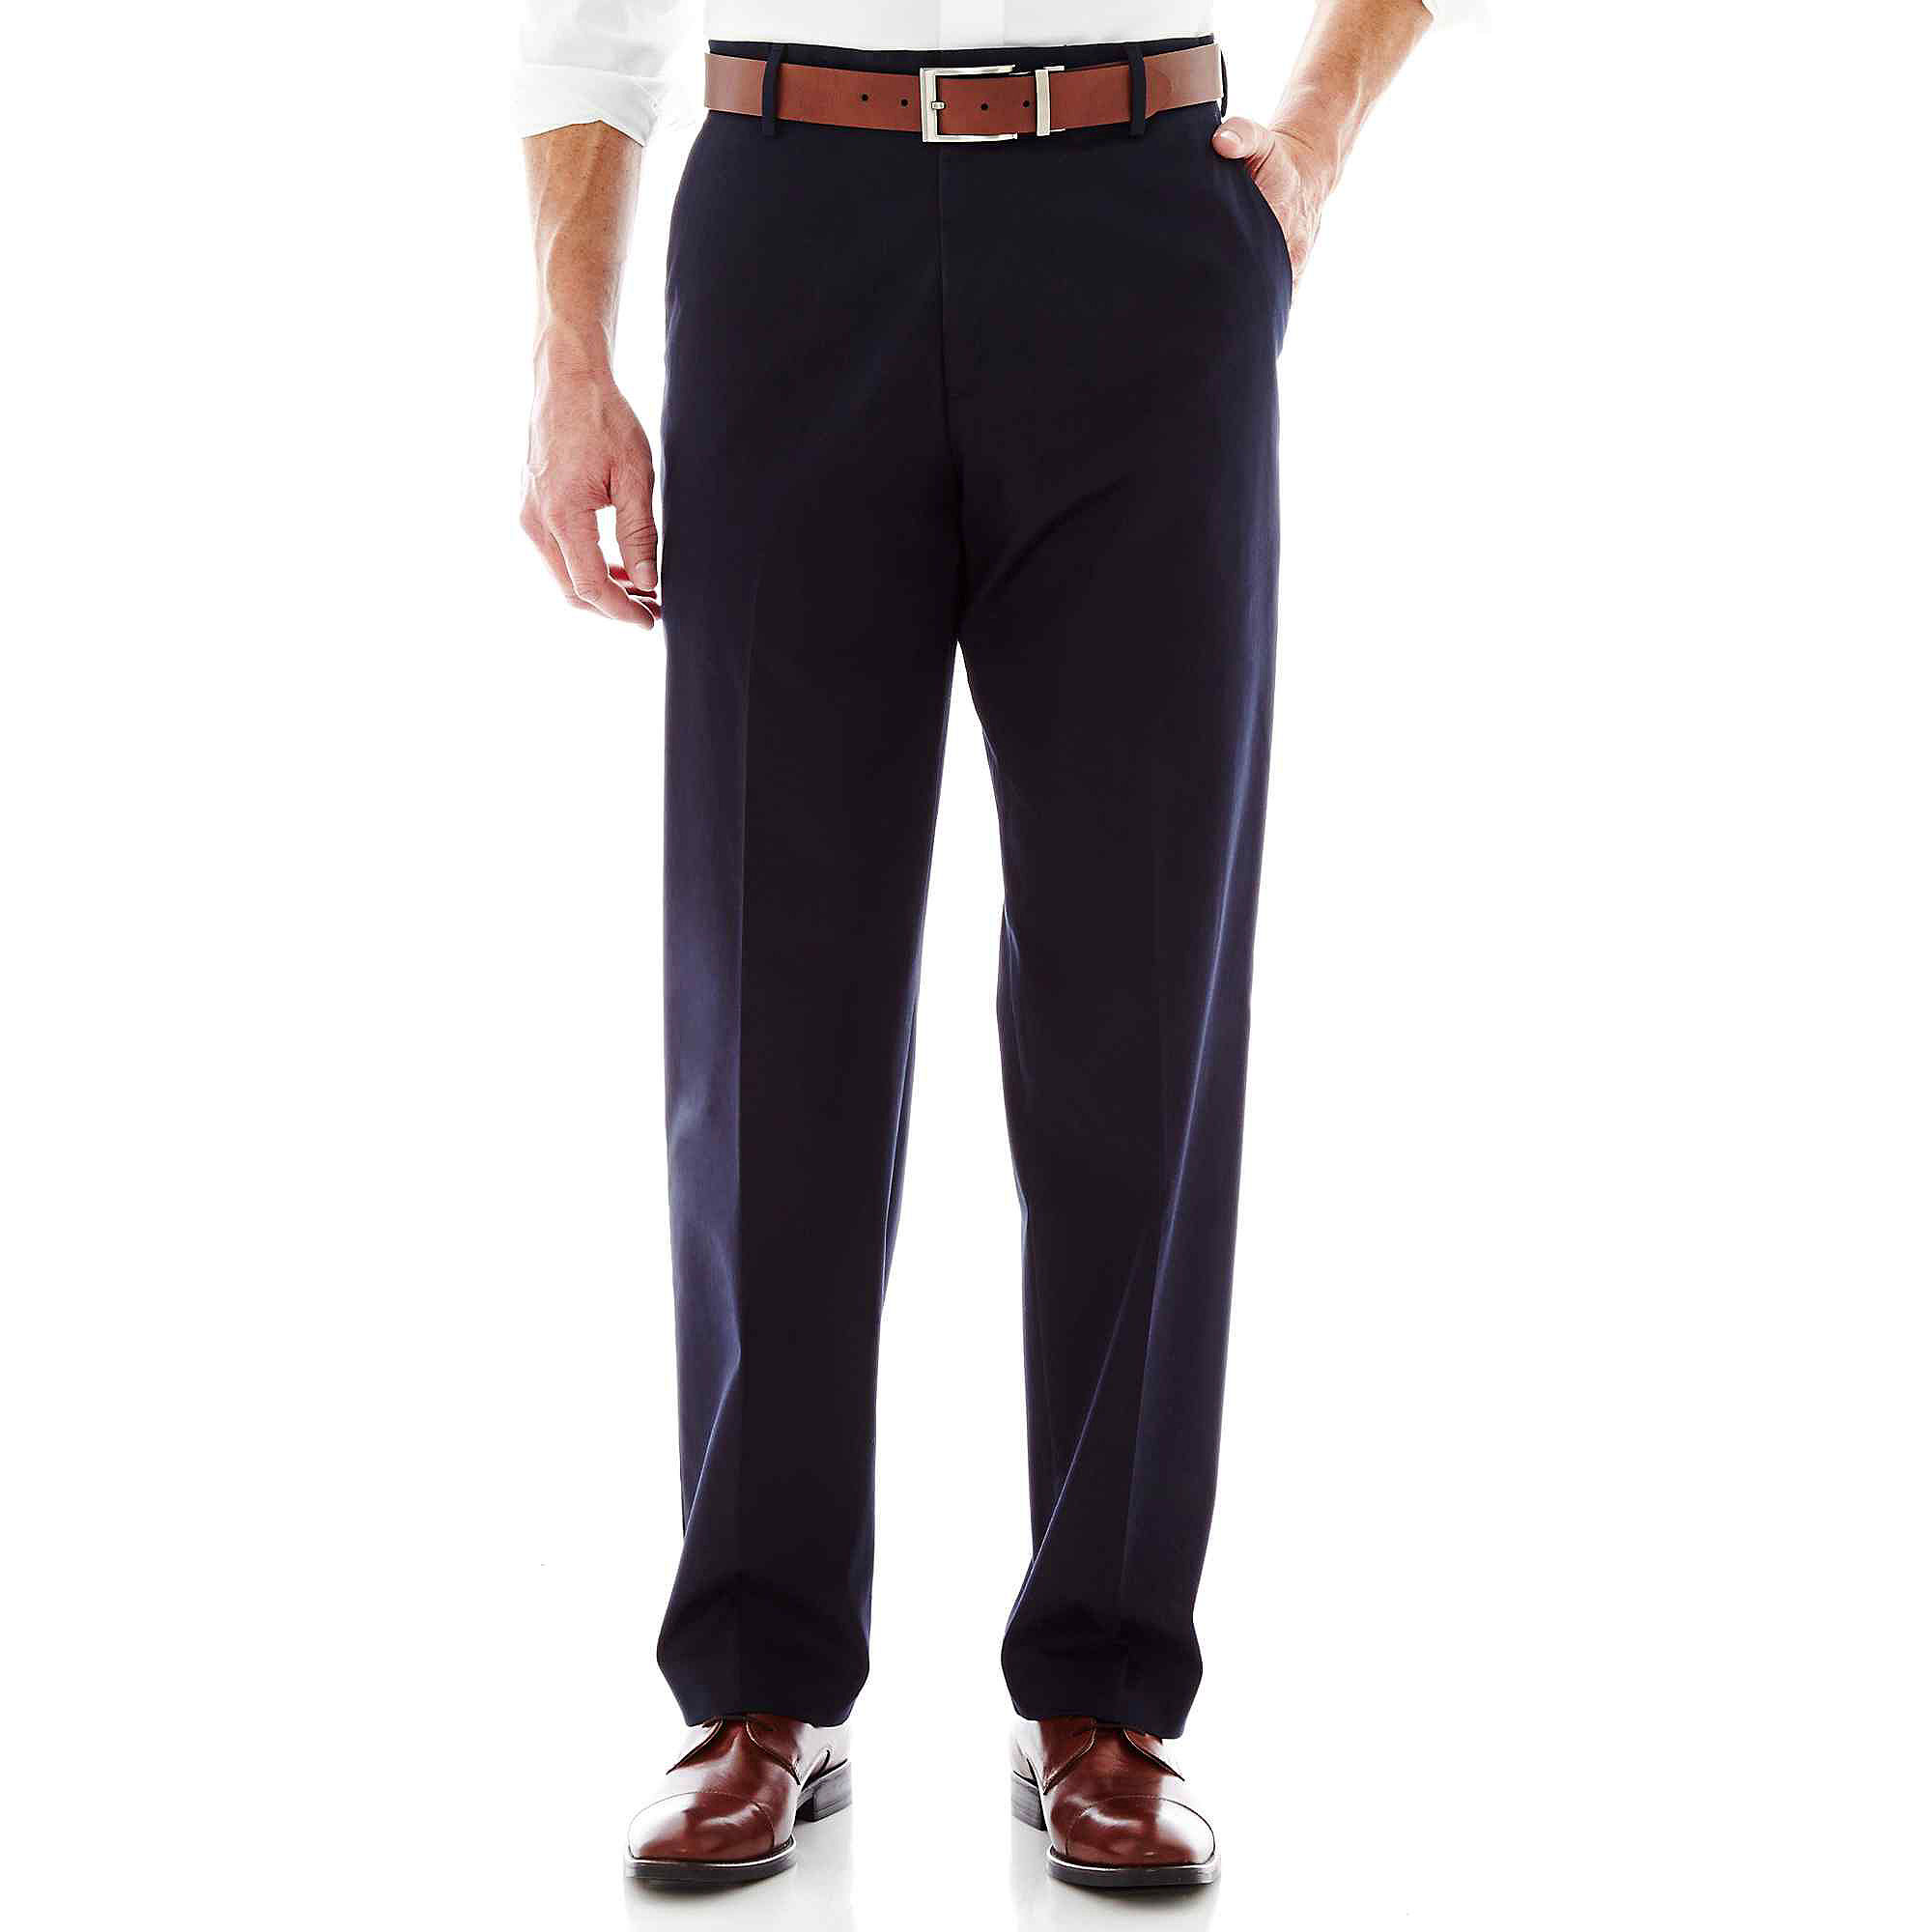 Dockers Iron-Free Relaxed-Fit Flat-Front Pants